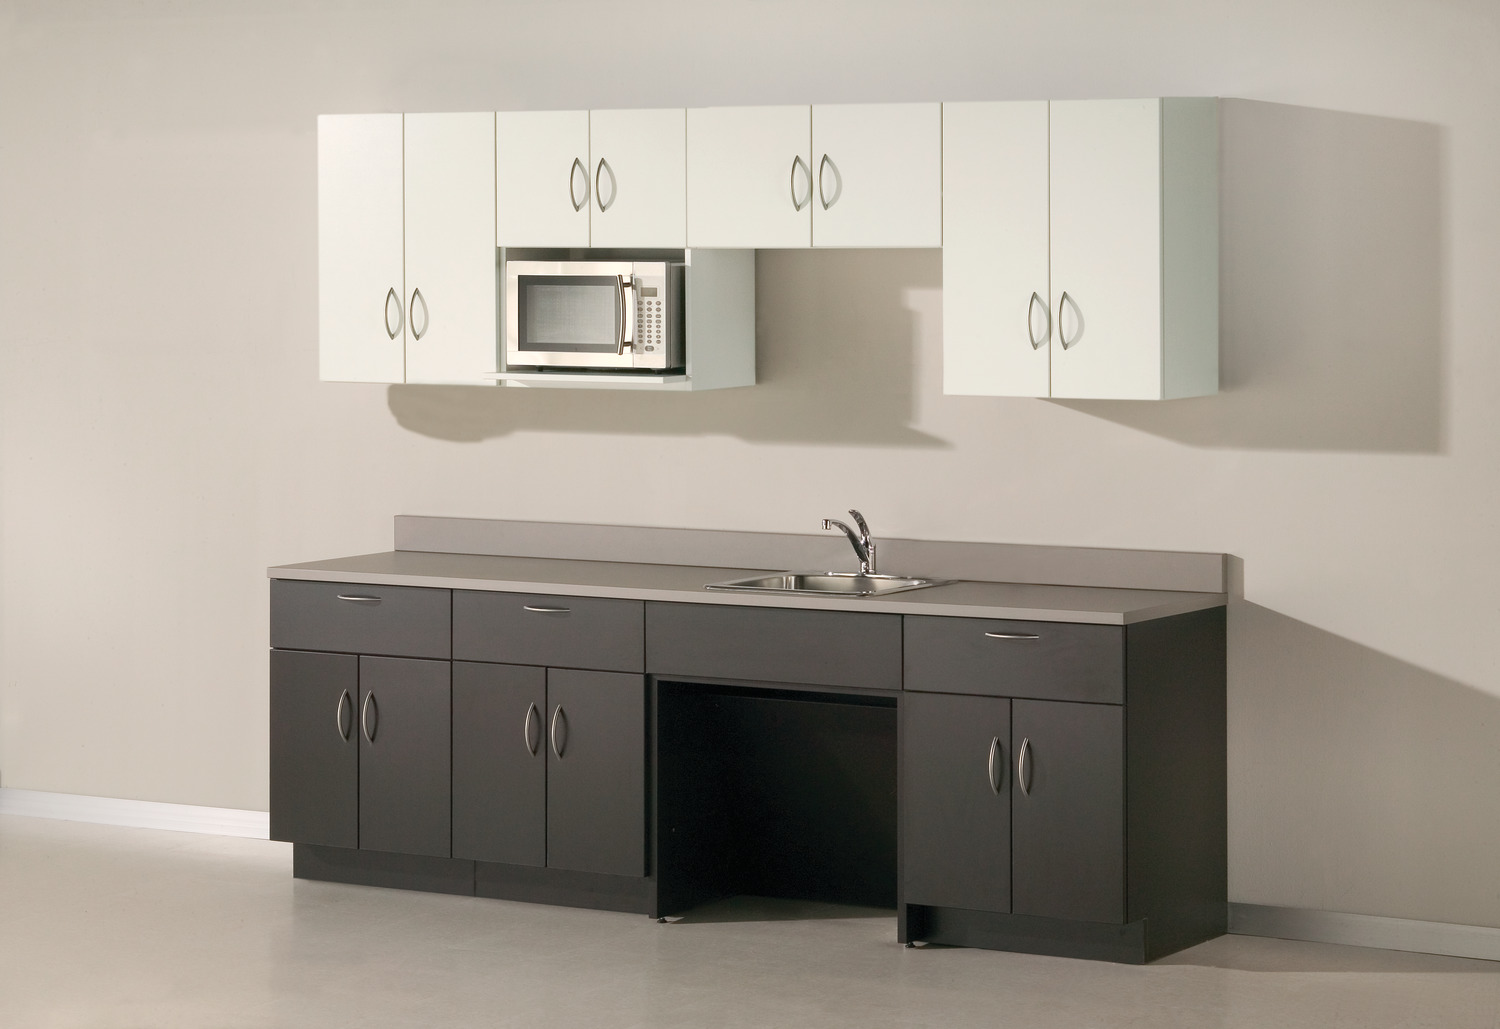 Combination designer modular bathroom furniture collection mab40 4 - Bathroom Modular Cabinets Resources Download More Modular Cabinets Photography Download